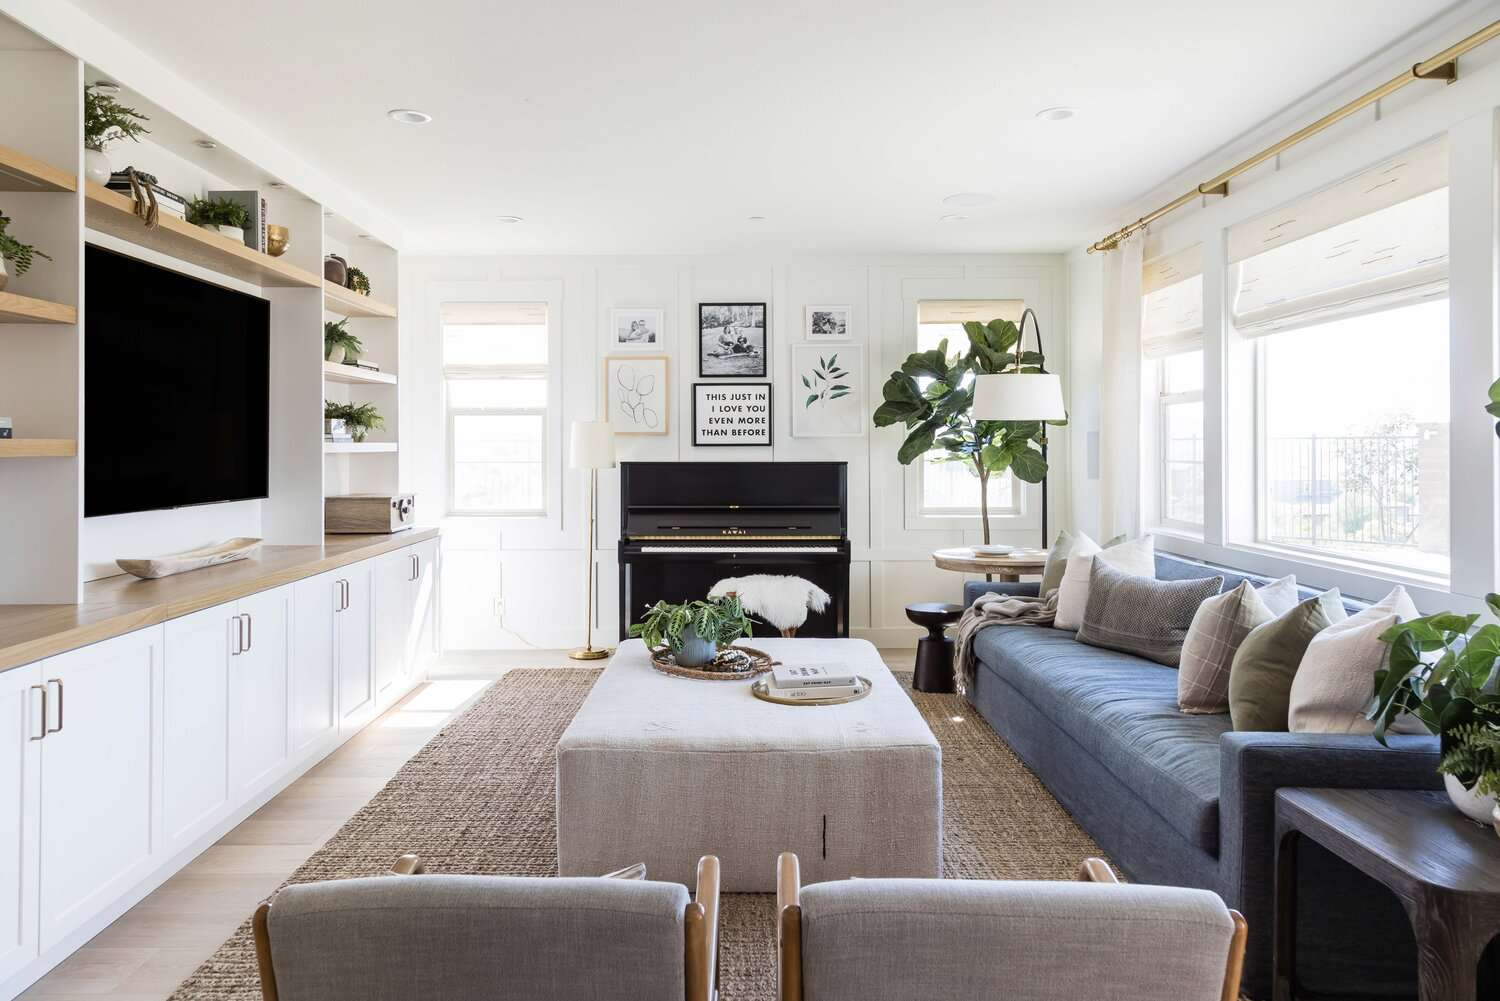 Cozy living room with an ottoman coffee table